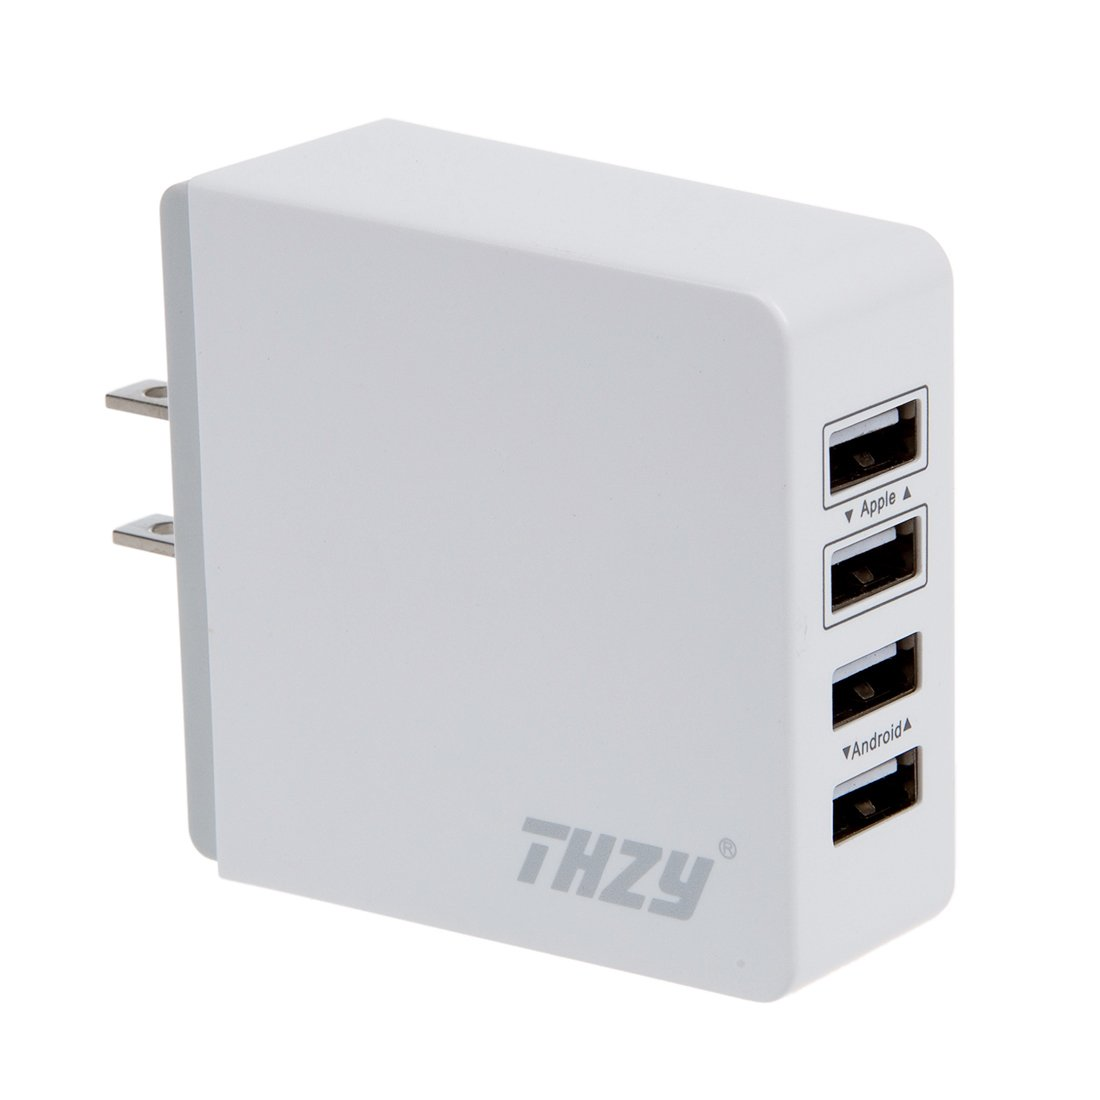 4-Port USB Wall Charger, THZY 7.2A 36W 4-Port USB Home Travel Charger with SmartID Tech for iPhone iPad, Samsung Galaxy, HTC LG Nexus Moto Blackberry, Tablets, Power Bank